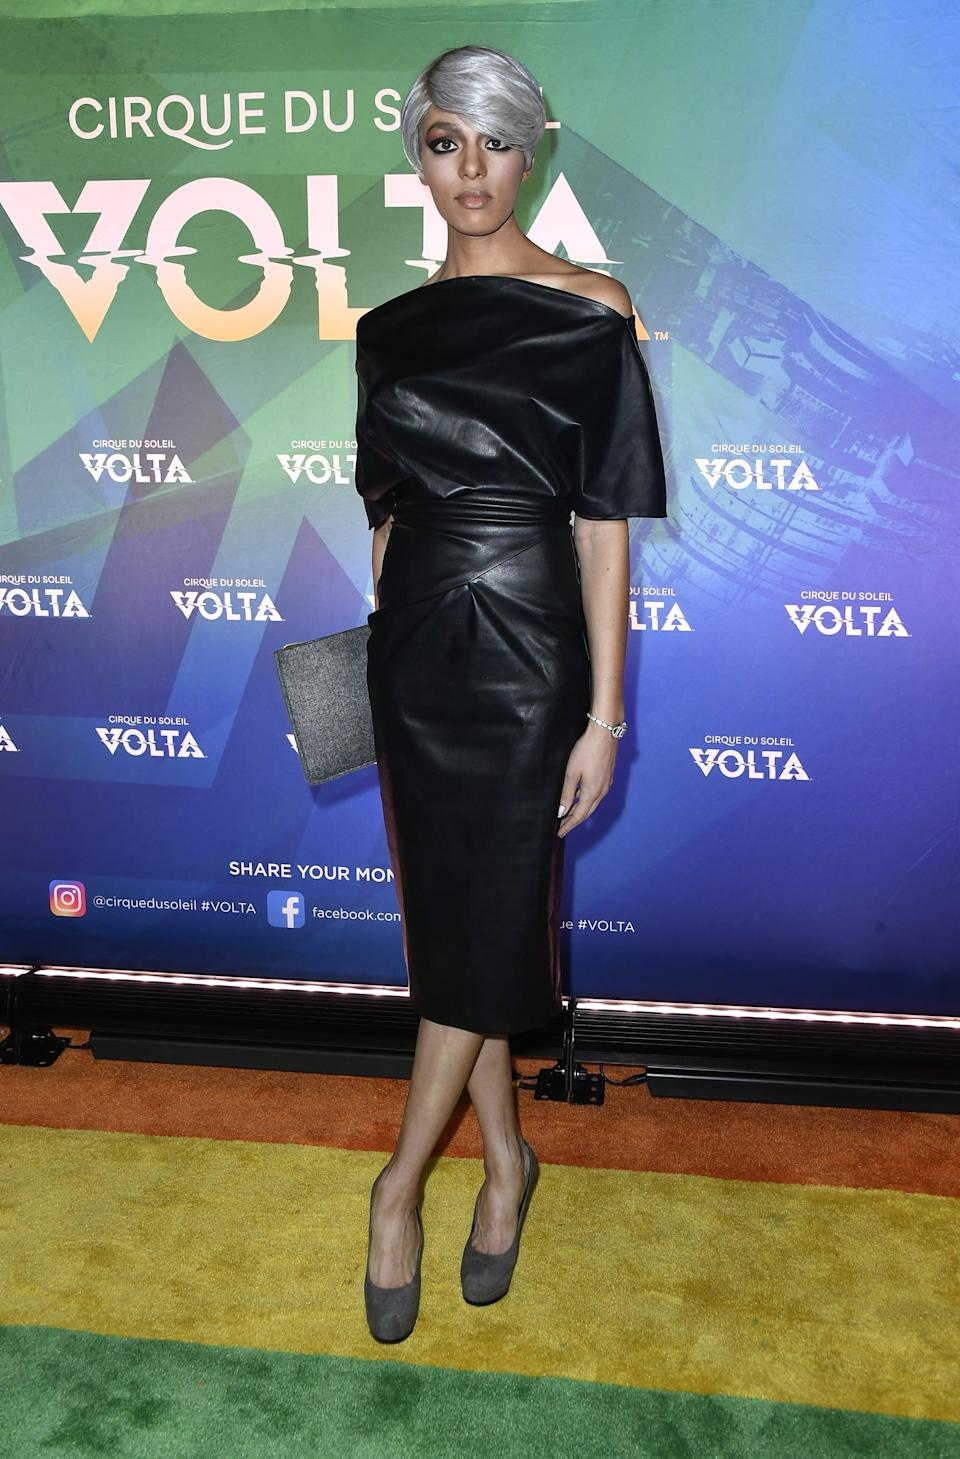 <p>Arisce Wanzer is an American model who has walked for Topshop and was featured in a campaign for Kenneth Cole during the start of her career. Now, she has been featured in magazines like <strong>Vogue</strong>, <strong>Elle</strong> and <strong>Forbes</strong>. </p>